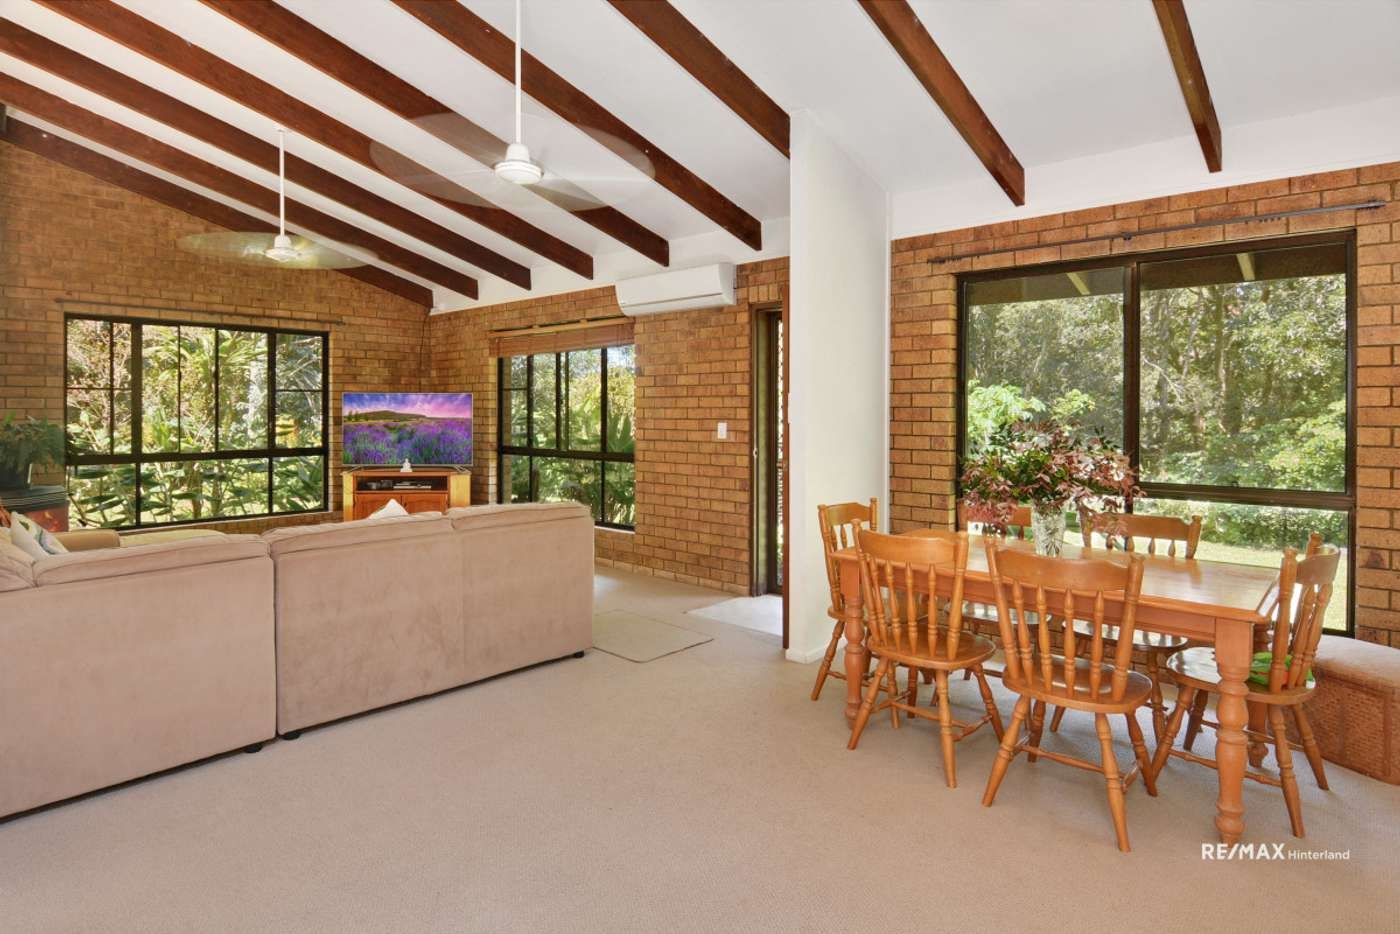 Seventh view of Homely house listing, 13 Treehaven Way, Maleny QLD 4552